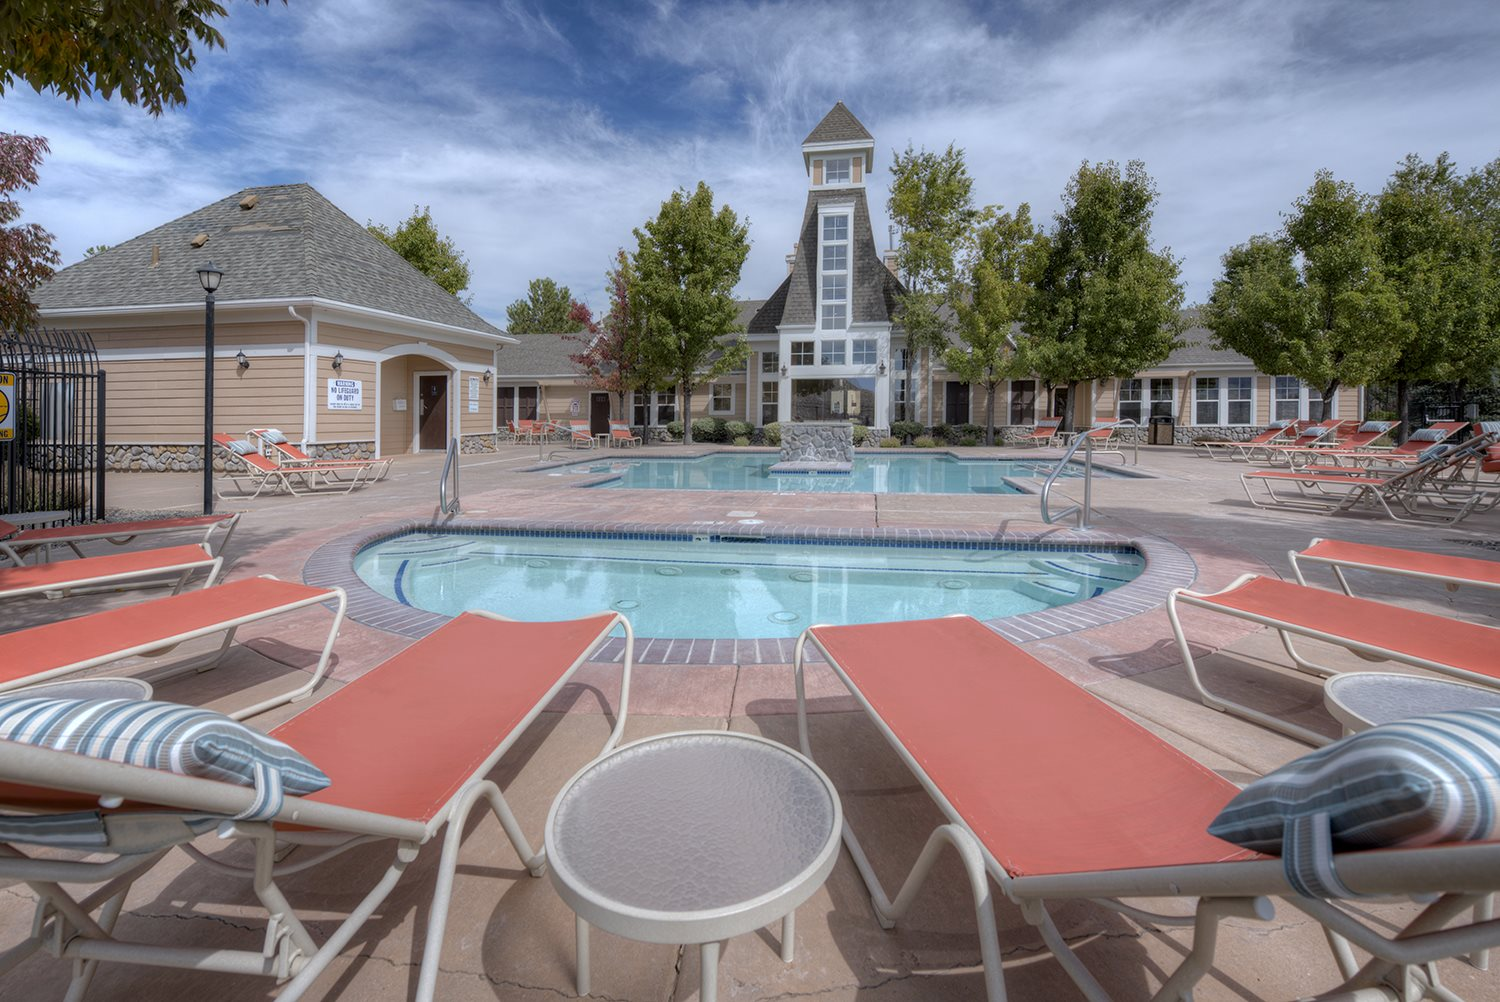 Poolside Lounge Chairs  at Manzanita Gate Apartment Homes, 2475 Robb Drive, NV